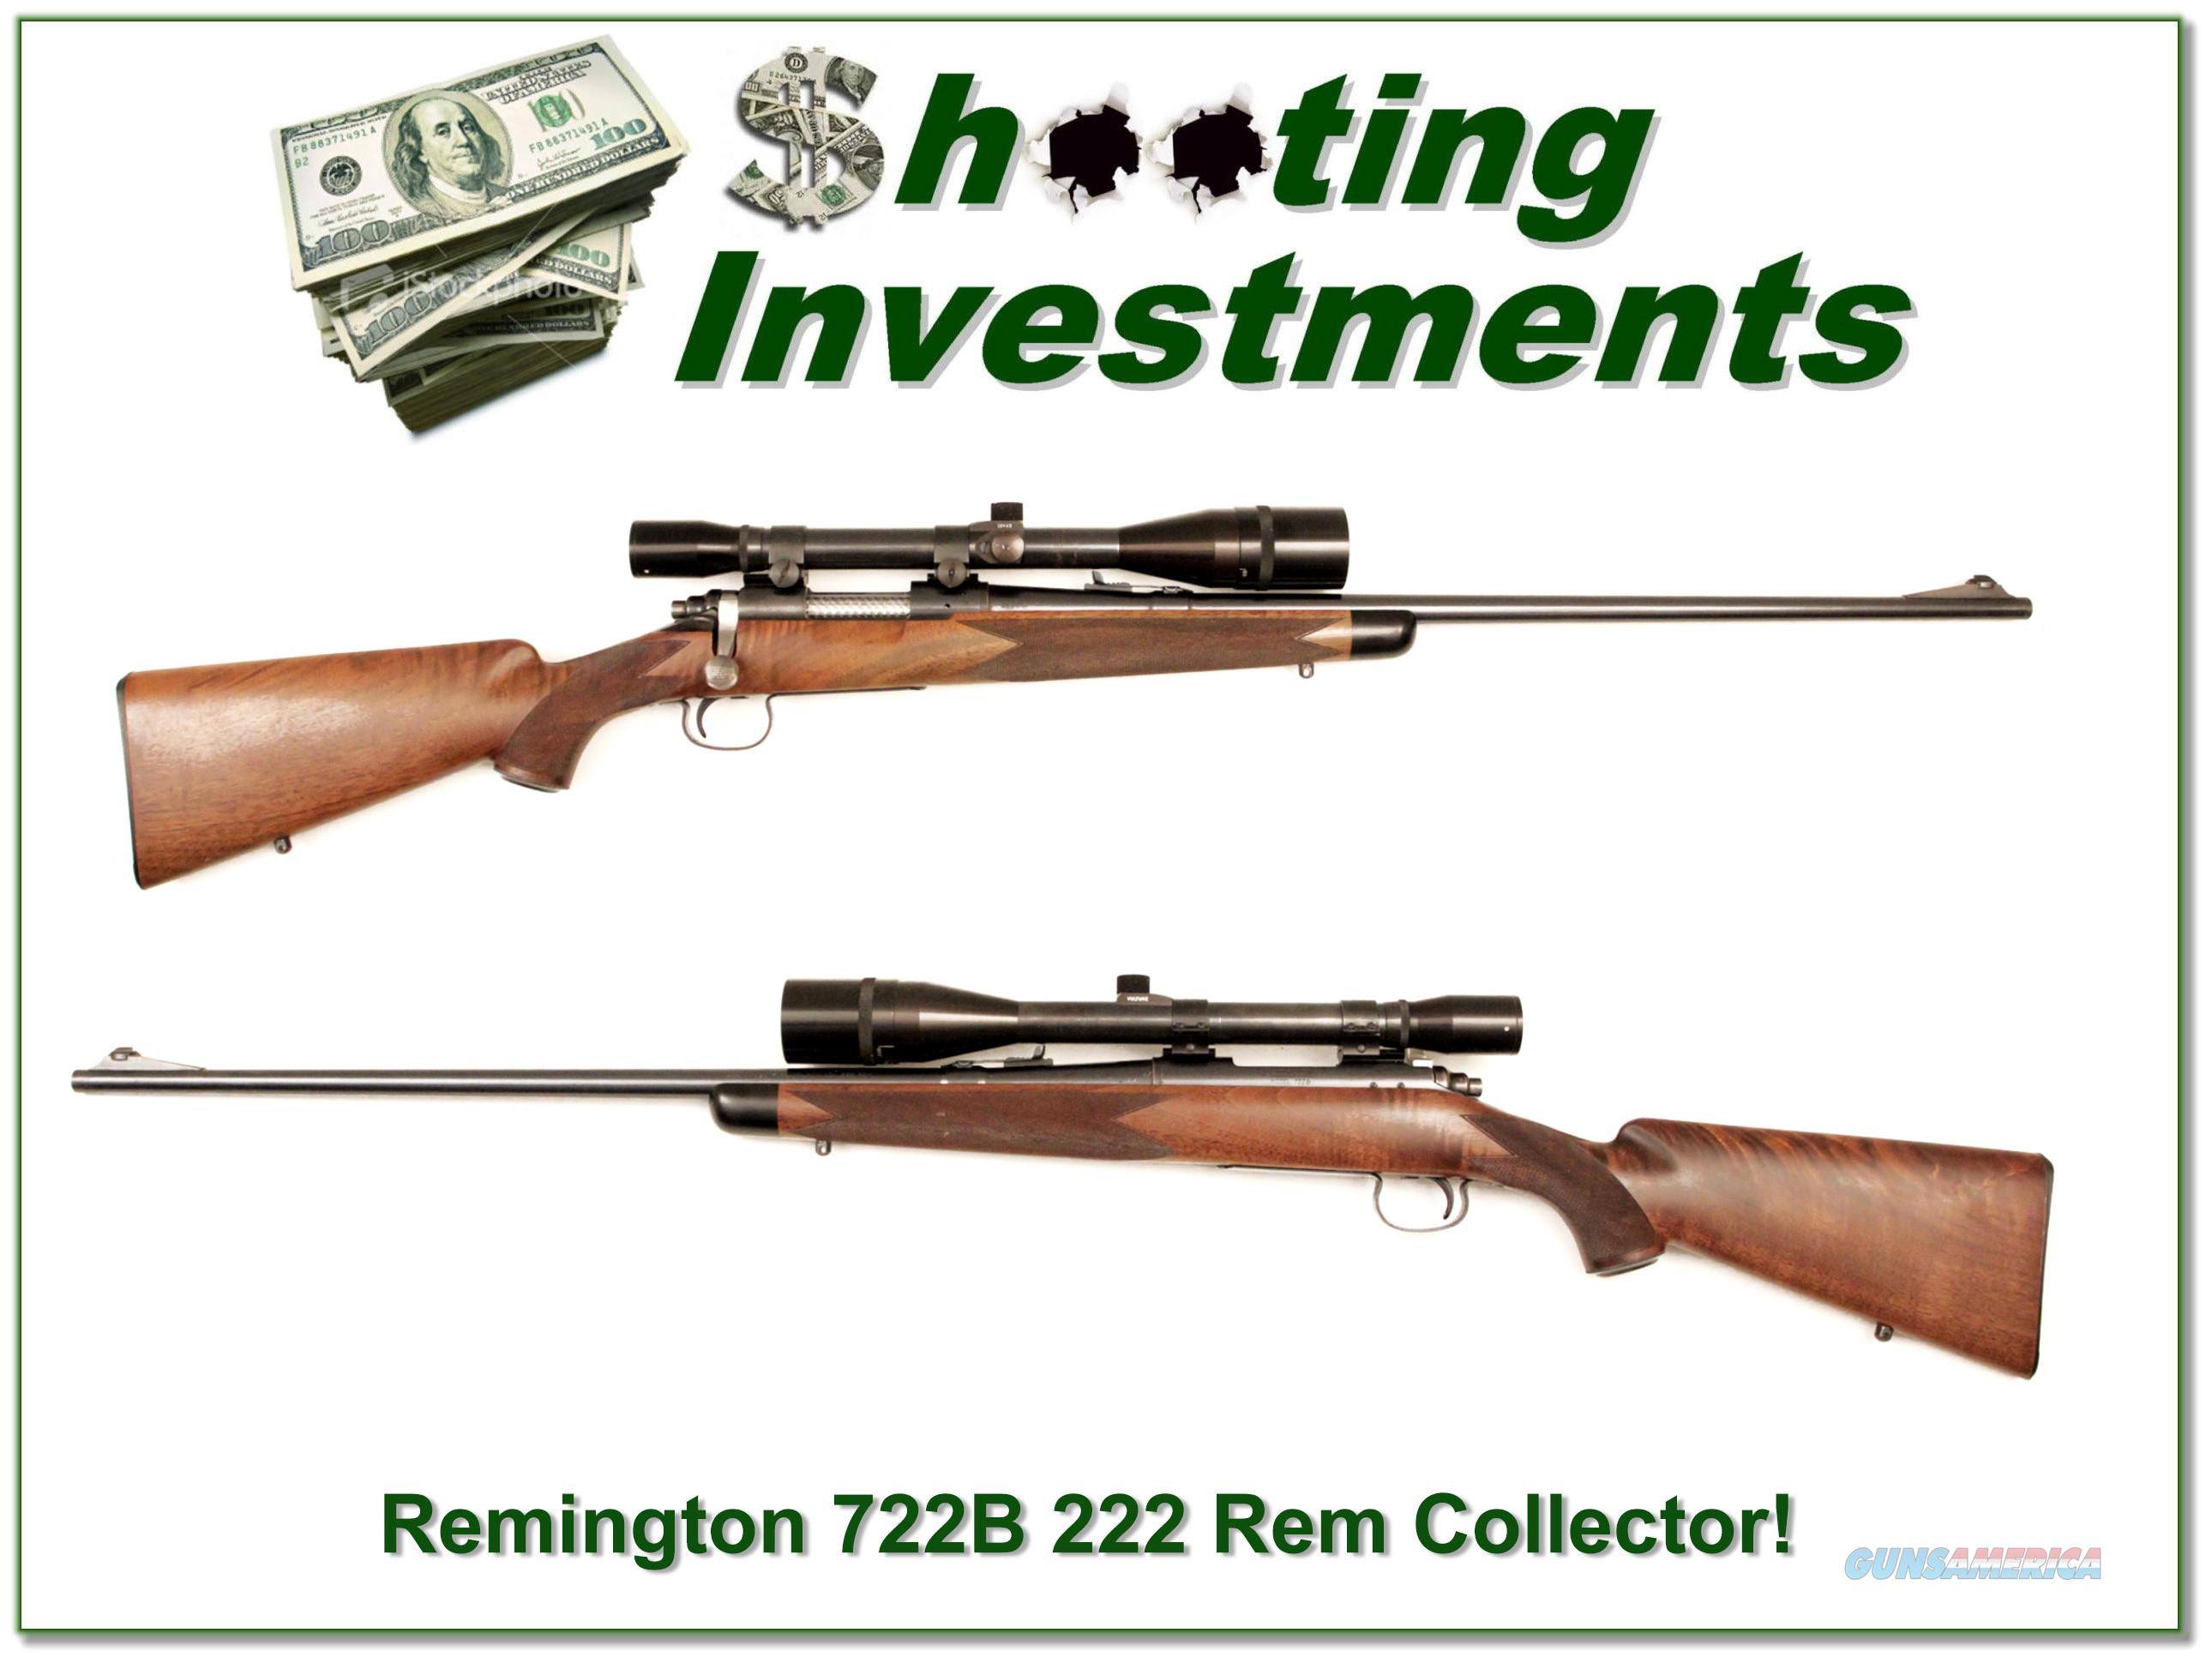 Remington Model 722B 222 Rem with Unertl 10x scope  Guns > Rifles > Remington Rifles - Modern > Bolt Action Non-Model 700 > Sporting